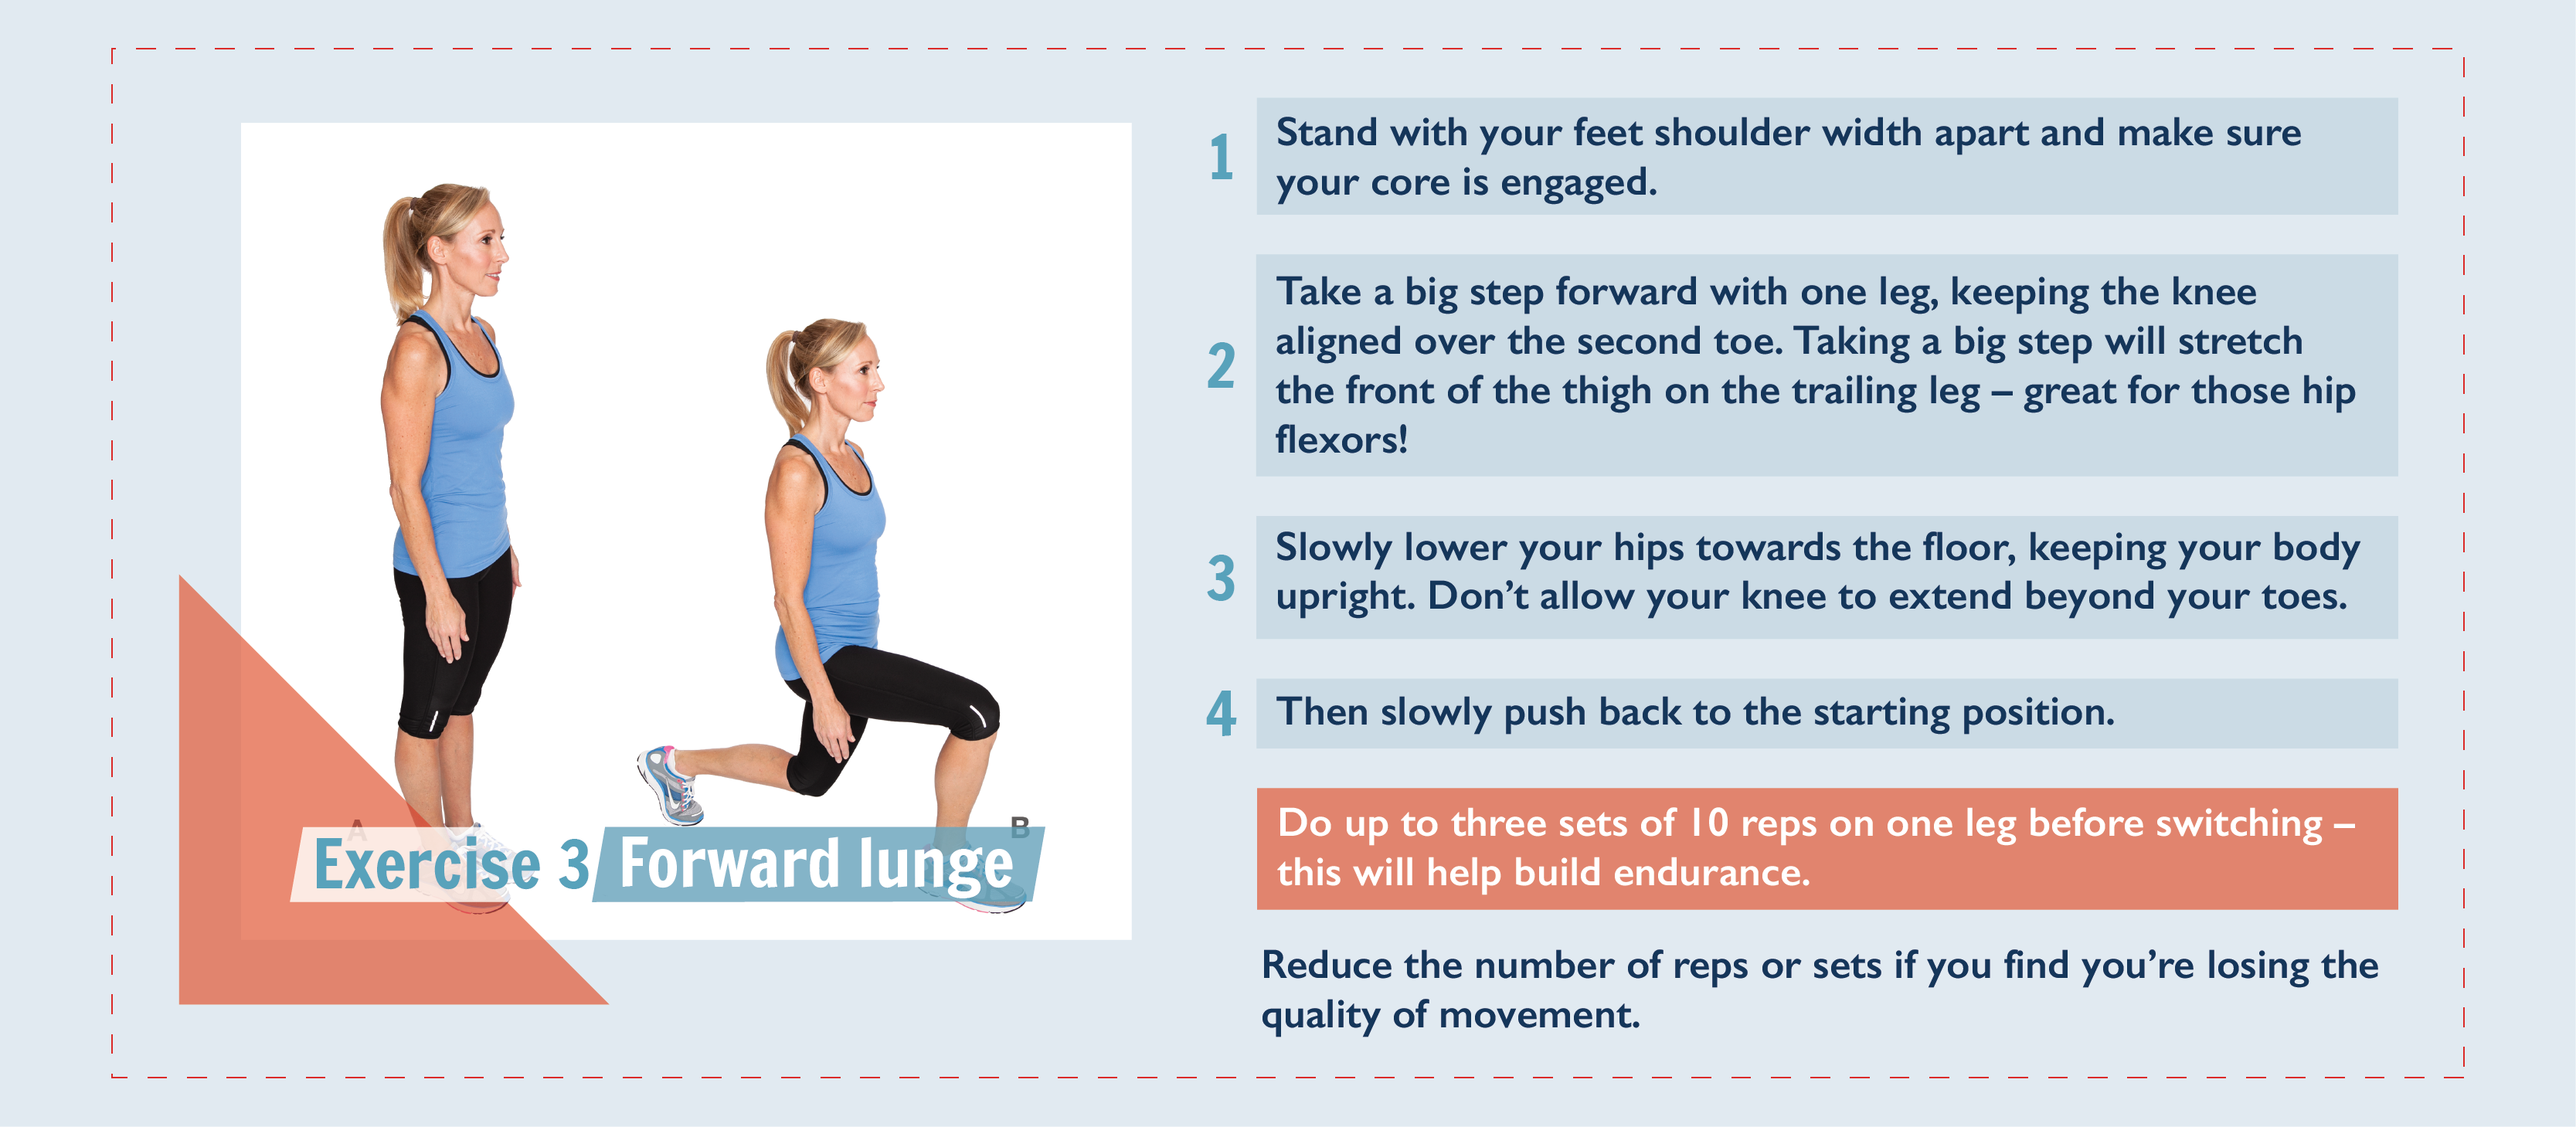 Exercise 3, the forward lunge. Step 1:. Stand with your feet shoulder width apart and your core engaged. Step 2: Take a big step forward with one leg, keeping the knee aligned over the second toe. Taking a big step will stretch the front of the thigh on the trailing leg – great for those hip flexors! Step 3: Slowly lower your hips towards the floor, keeping your body upright. Don't allow your knee to extend beyond your toes. Step 4: Then slowly push back to the starting position. Do up to three sets of 10 reps on one leg before switching – this will help build endurance. Reduce the number of reps or sets if you find you're losing the quality of movement.